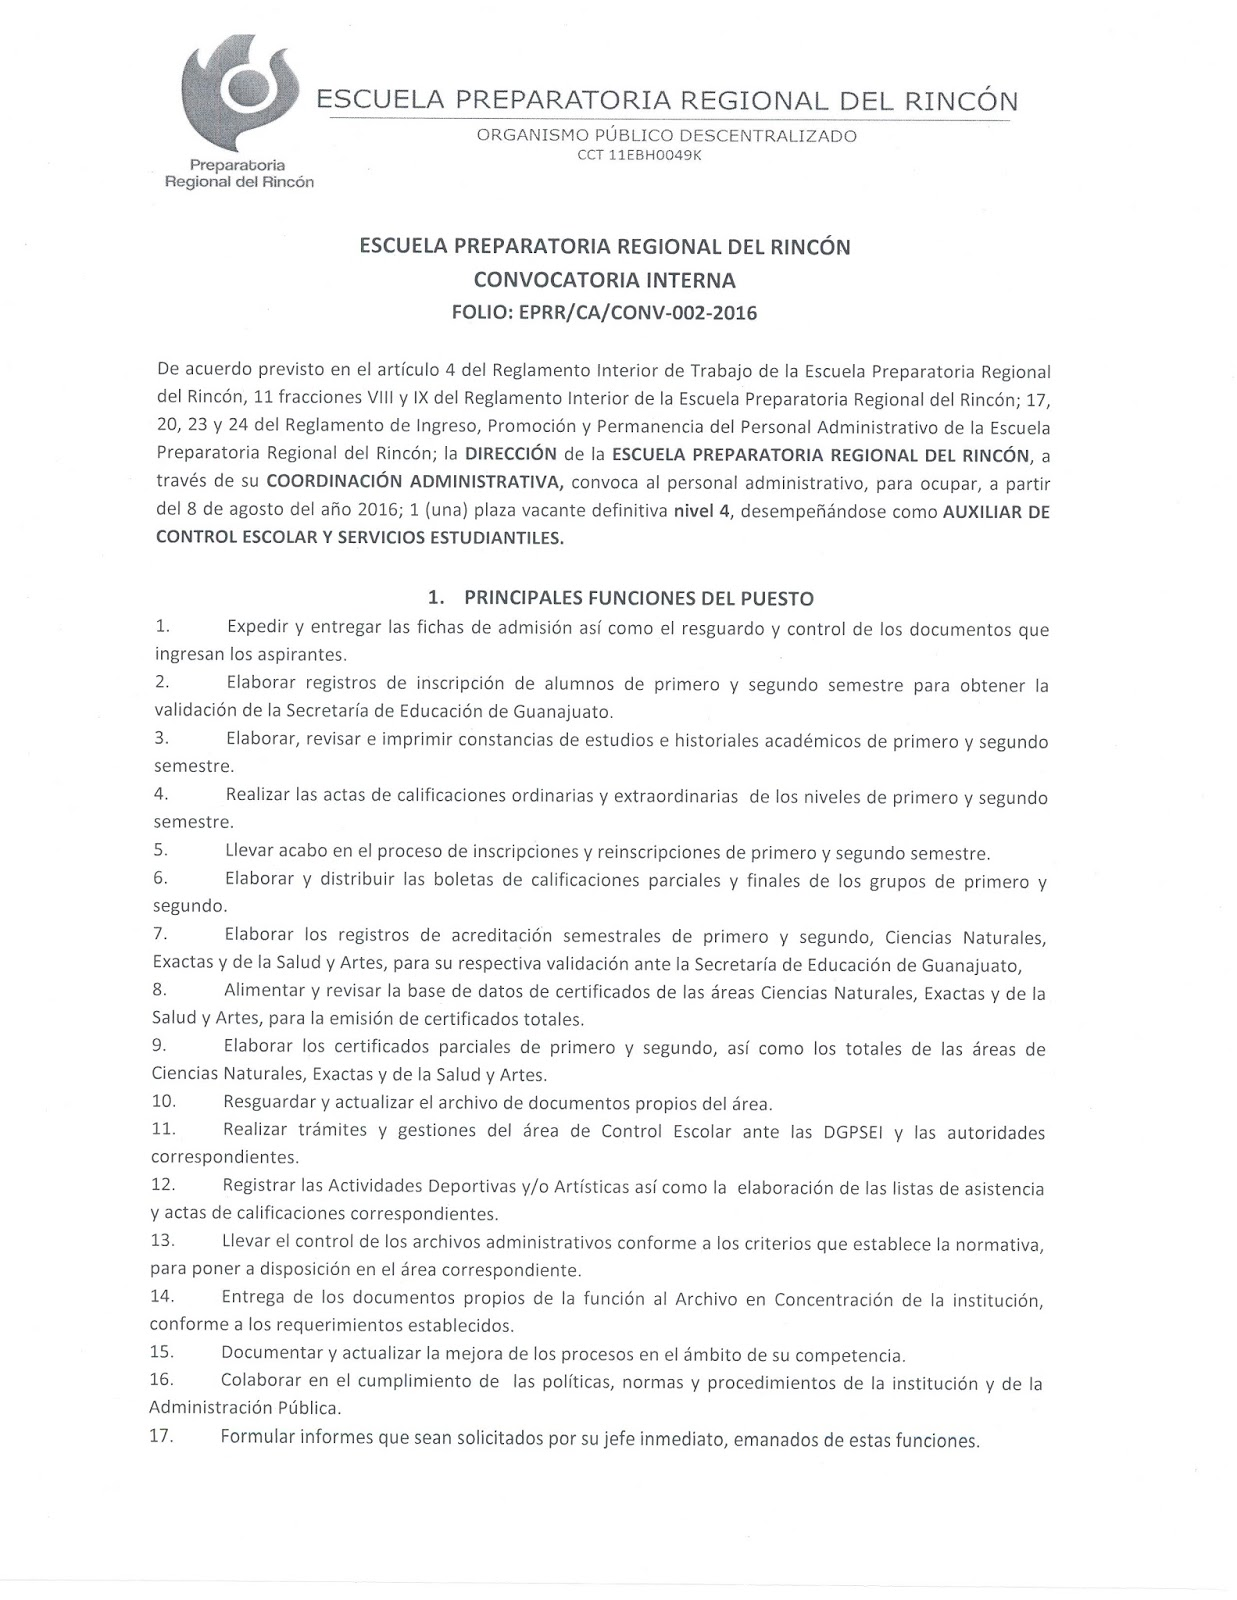 Blog docente de la preparatoria regional convocatoria for Convocatoria para las plazas docentes 2016